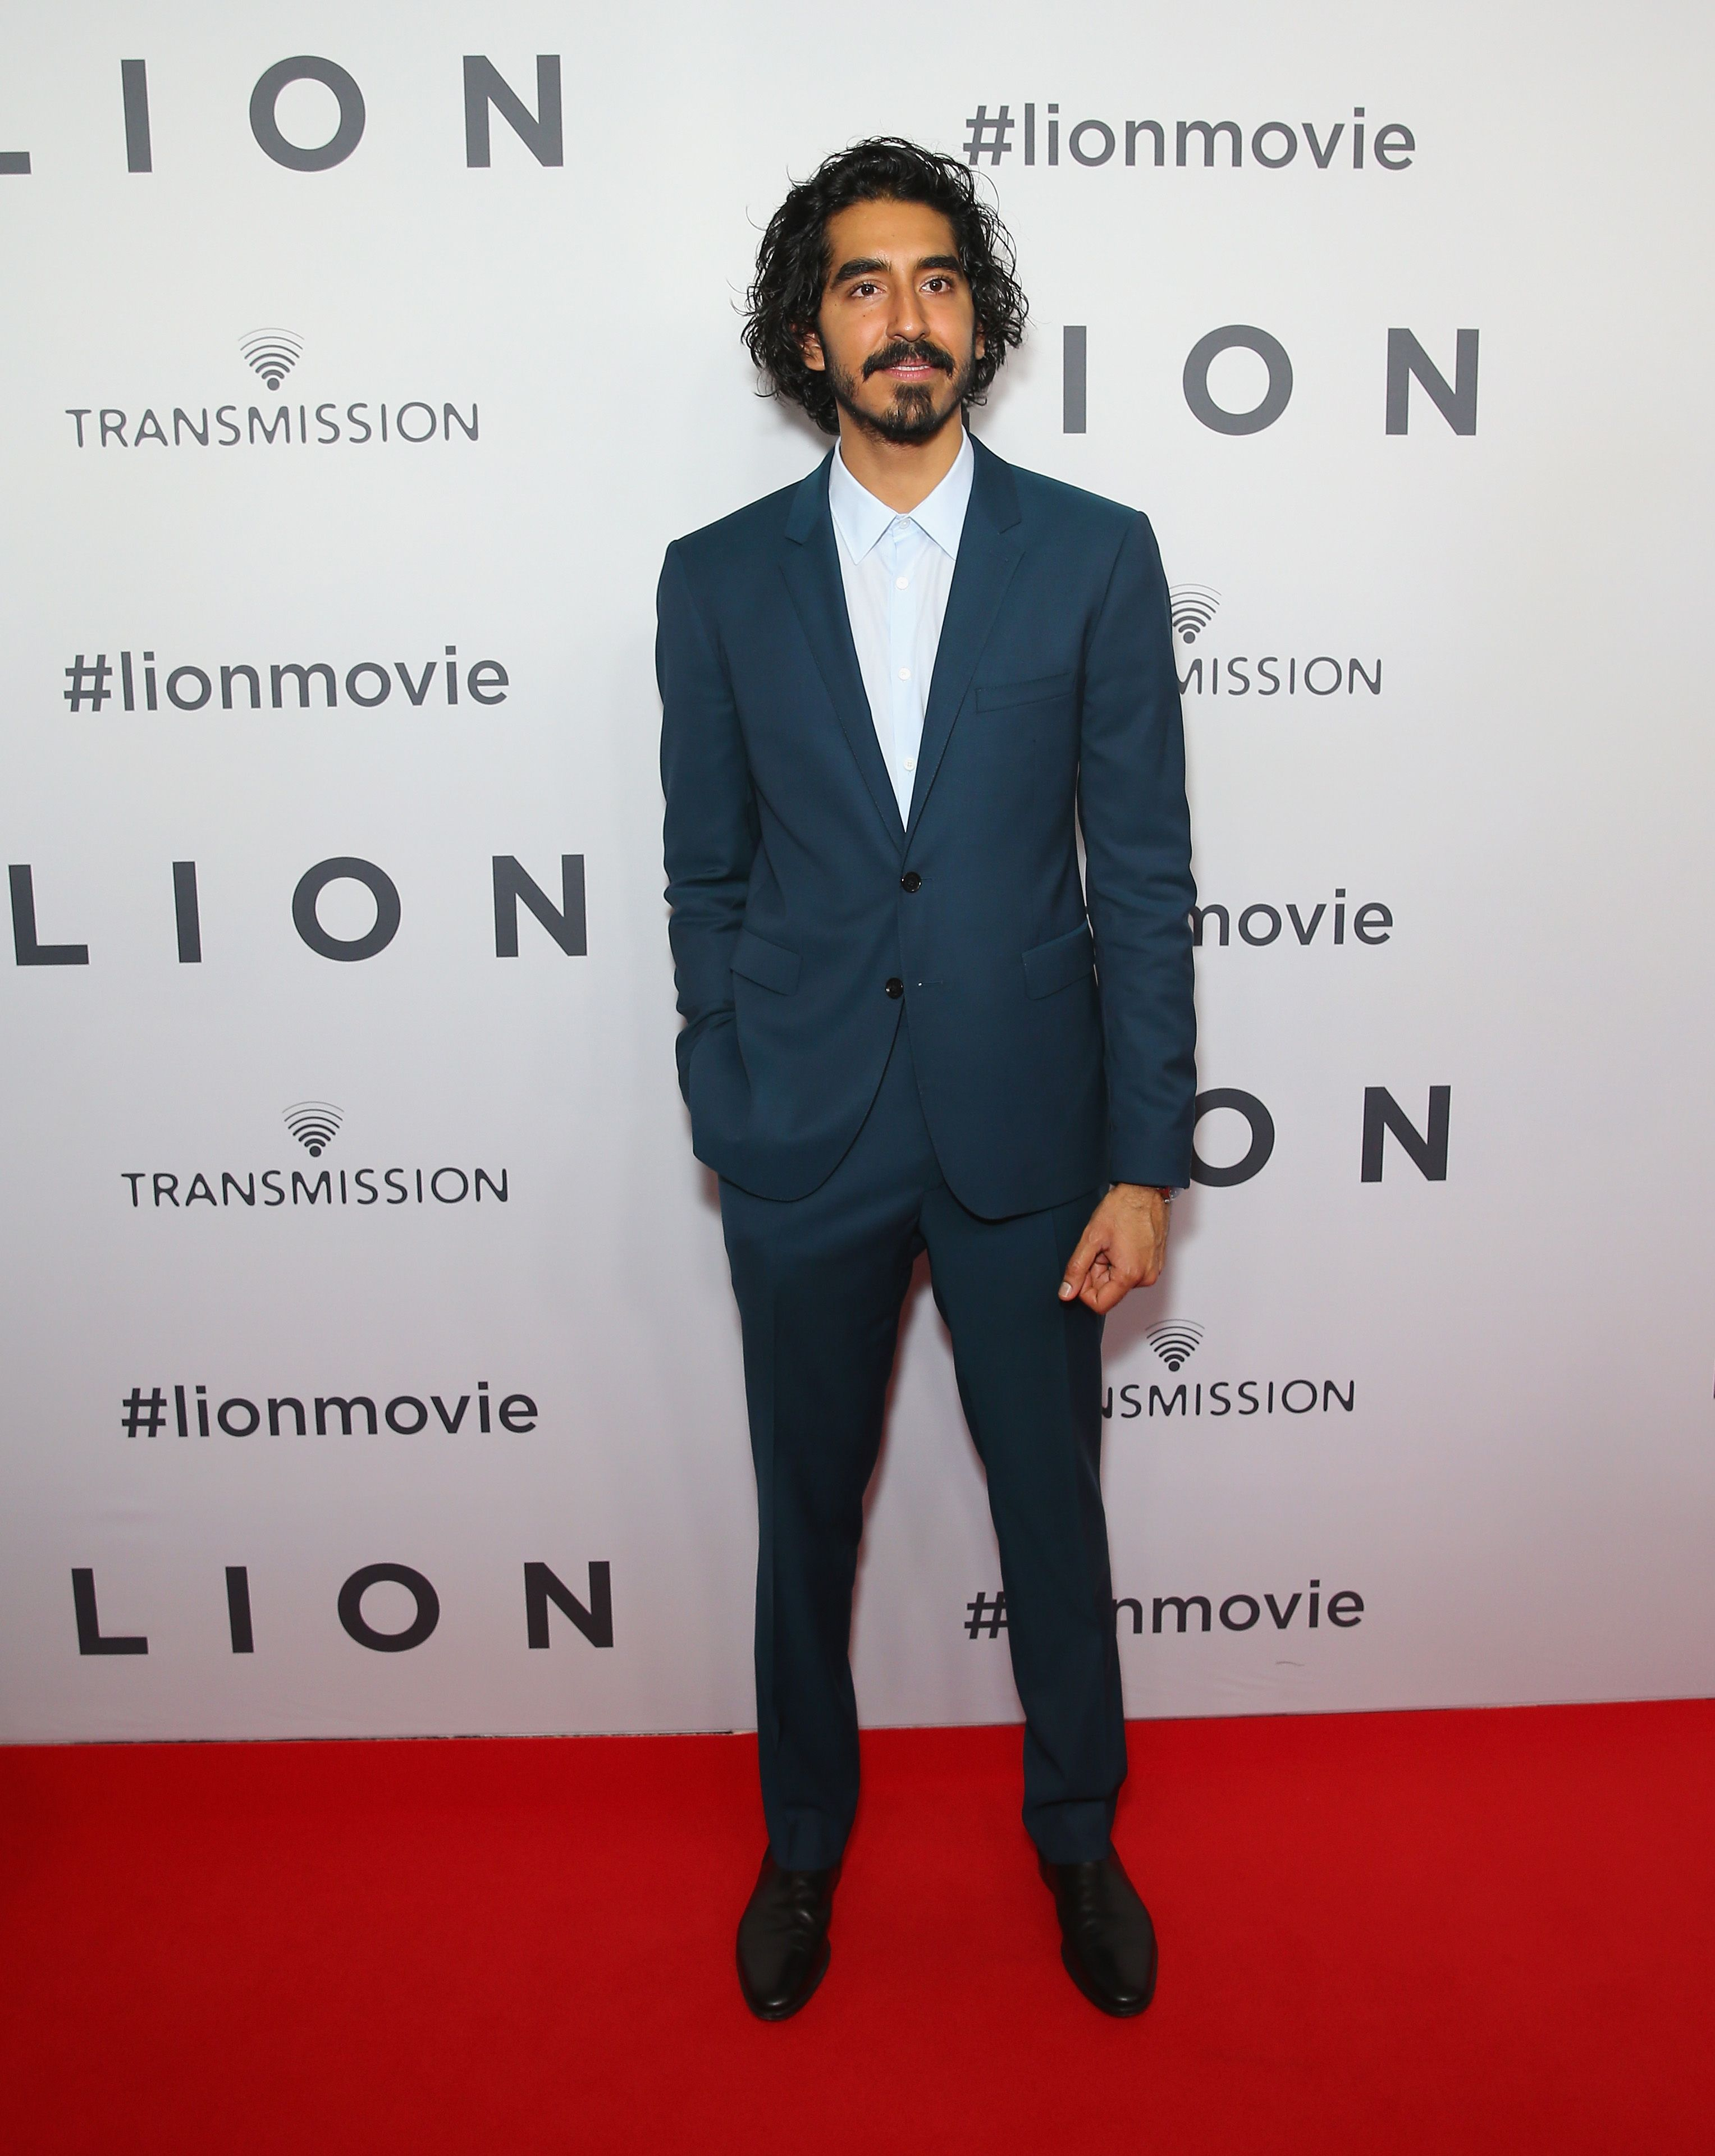 Actor Dev Patel wearing Burberry tailoring to the premiere of Lion in Sydney